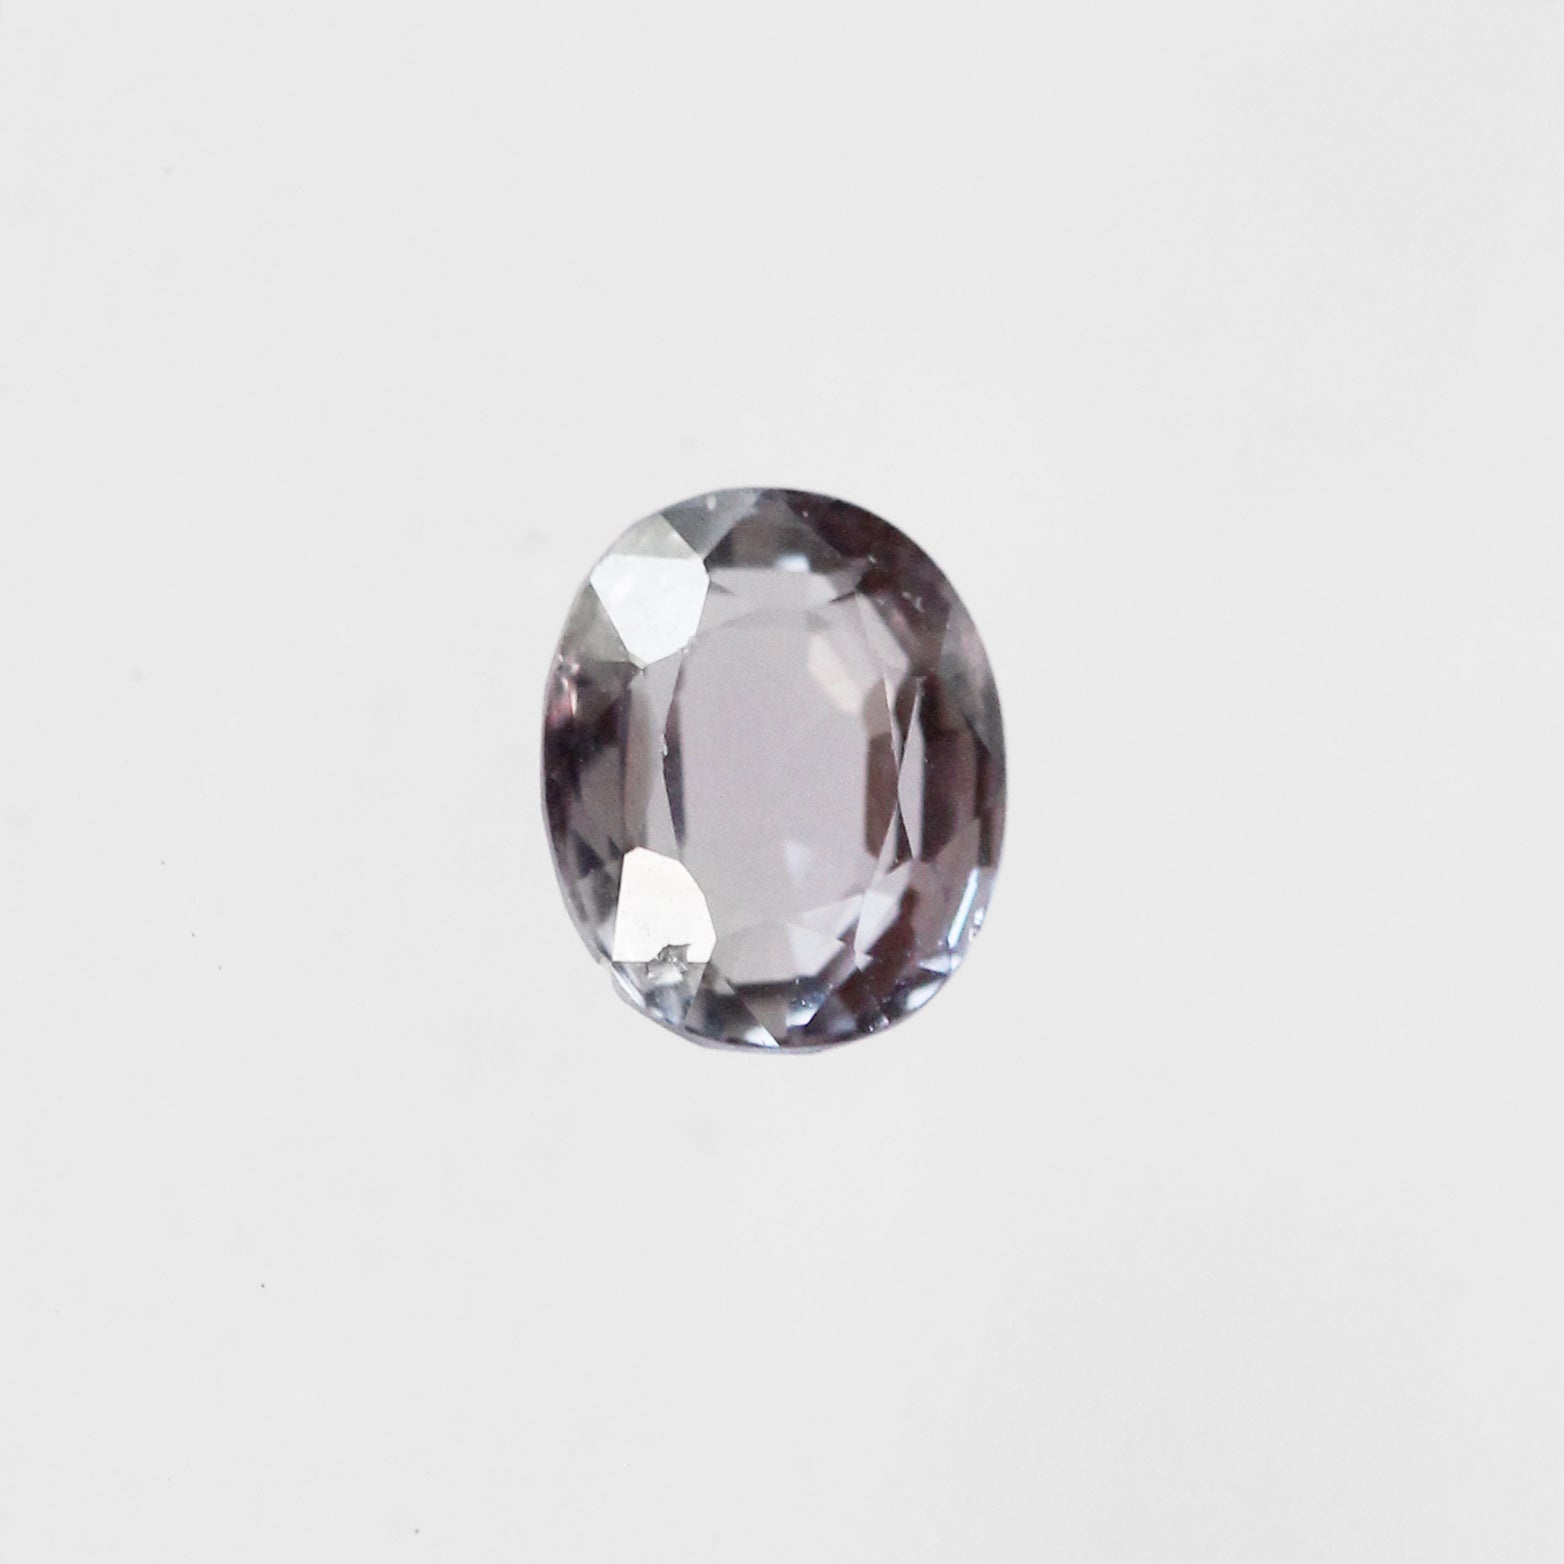 1.08 Carat Oval Spinel for Custom Work - Inventory Code OSP108 - Salt & Pepper Celestial Diamond Engagement Rings and Wedding Bands  by Midwinter Co.